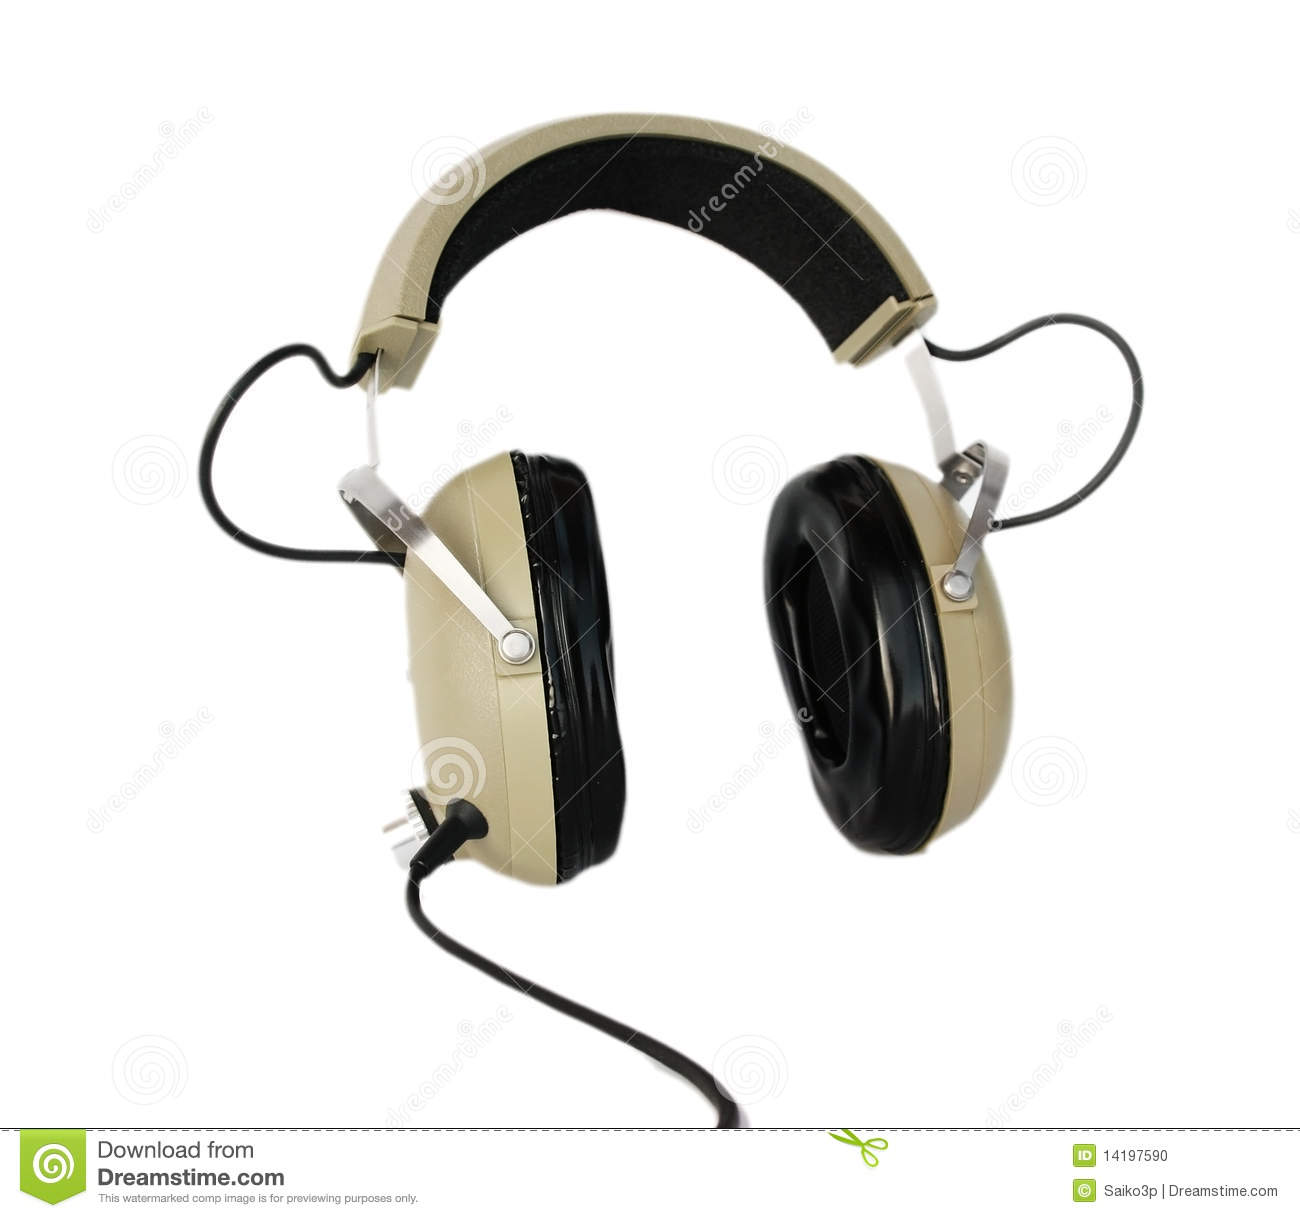 Stock Photo Old Style Headphones Image14197590 on wire connection symbol